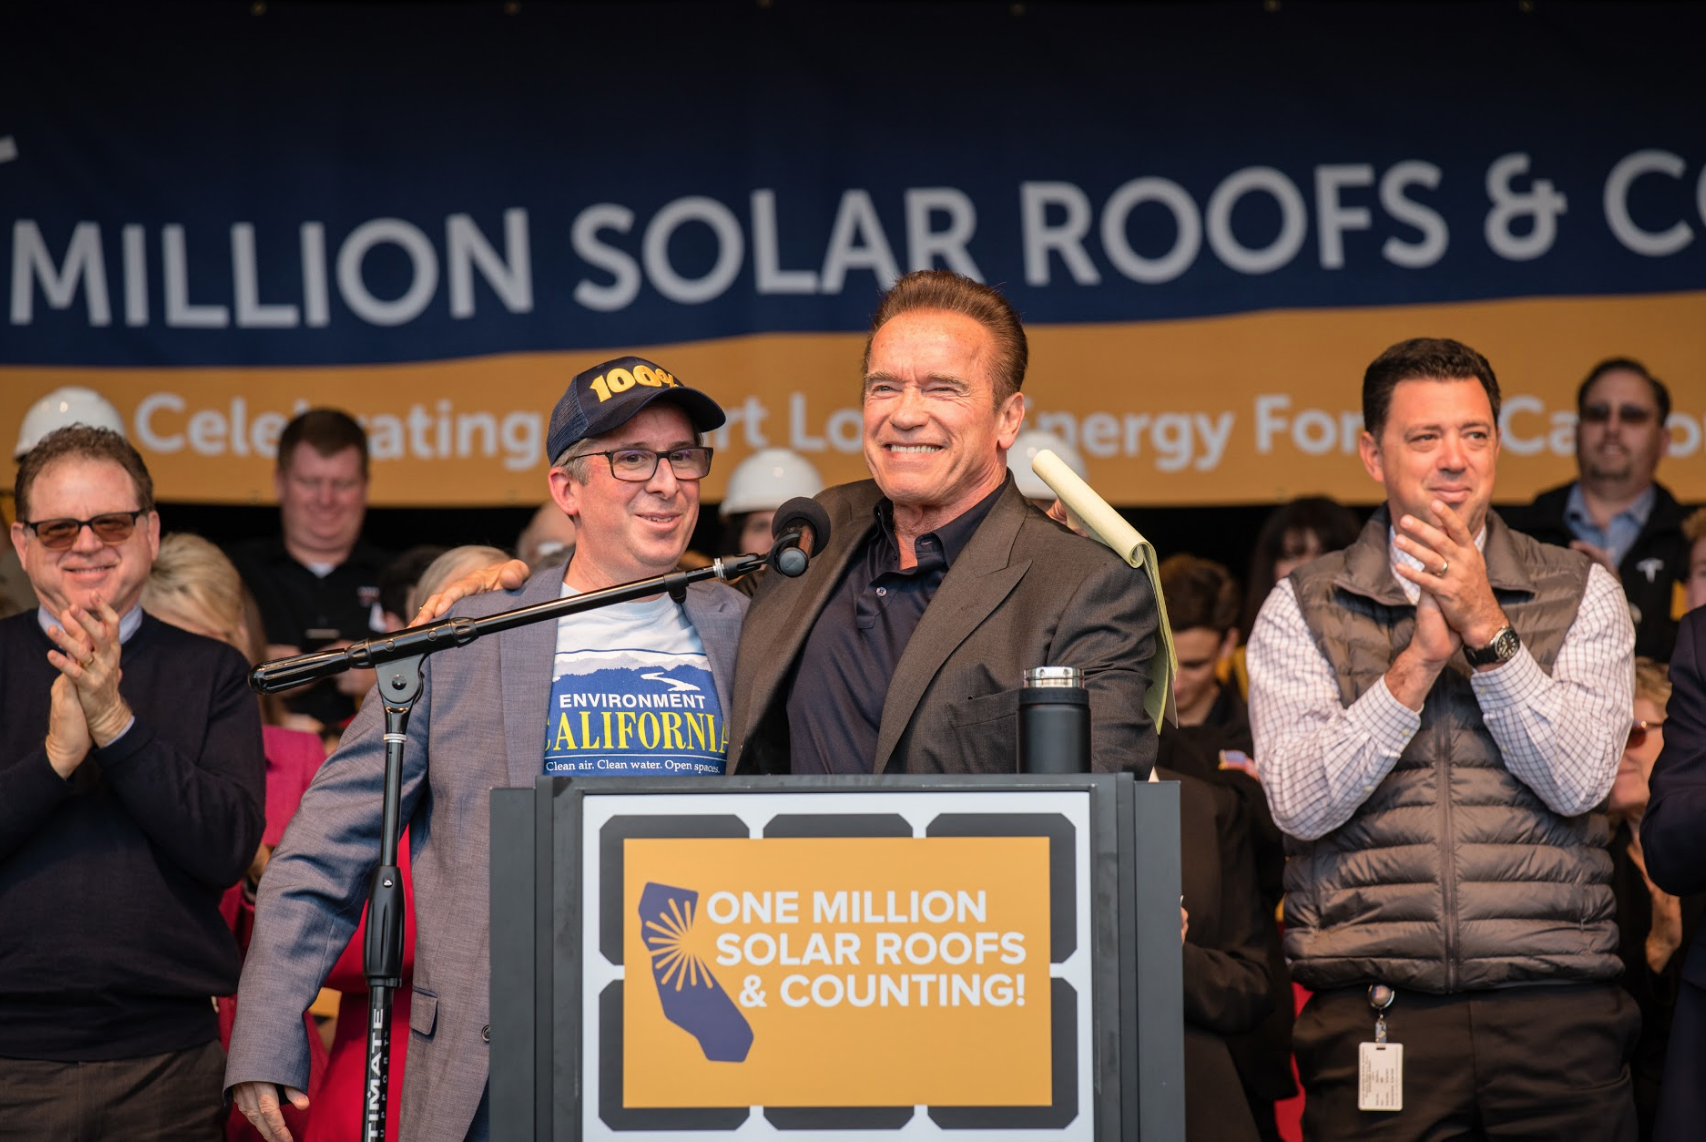 Environment California's Dan Jacobson celebrates reaching the Million Solar Roofs milestone alongside former Governor Schwarzenegger (photo credit: Tomas Ovalle)